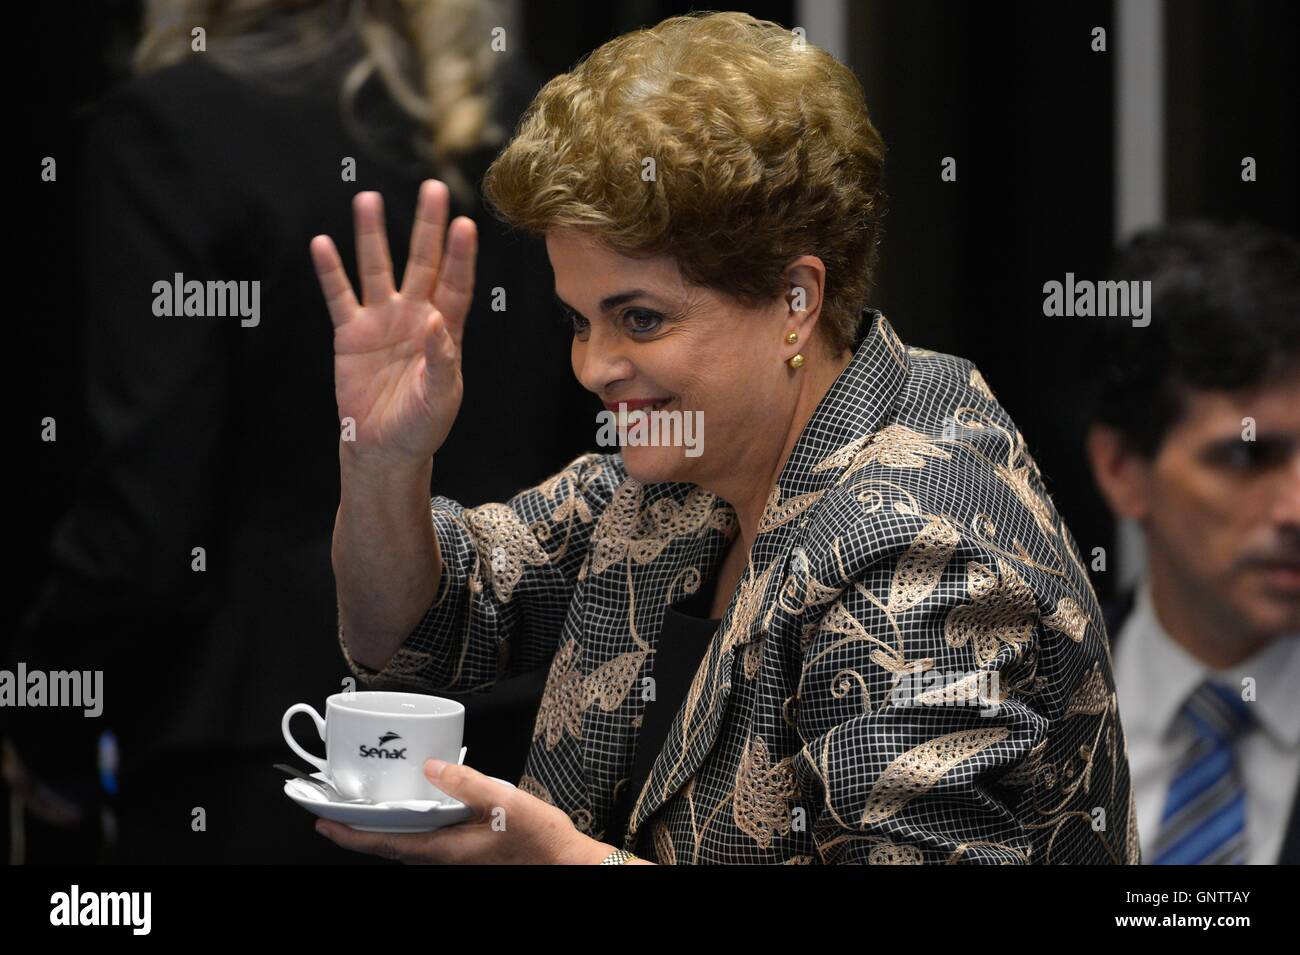 Brazilian President Dilma Rousseff during the impeachment trial in the Brazilian Senate August 29, 2016 in Brasilia, - Stock Image